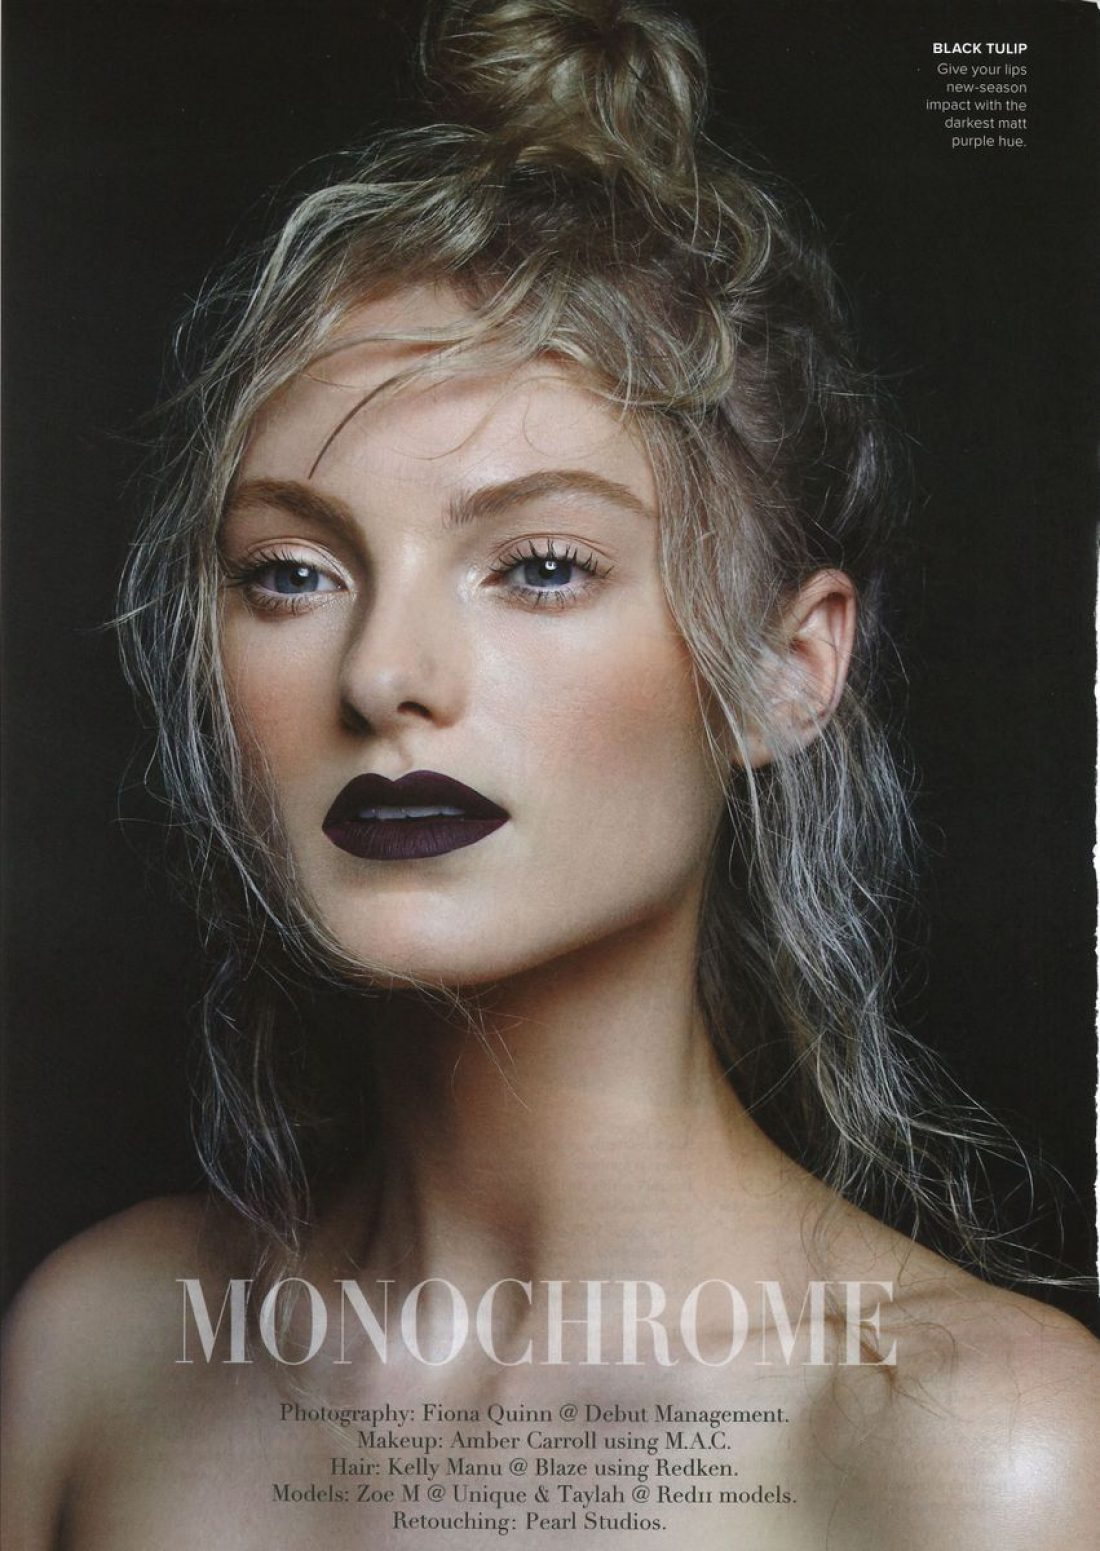 Zoe photographed by Fiona Quinn for M2 Magazine; Makeup by Amber Lou Carrol